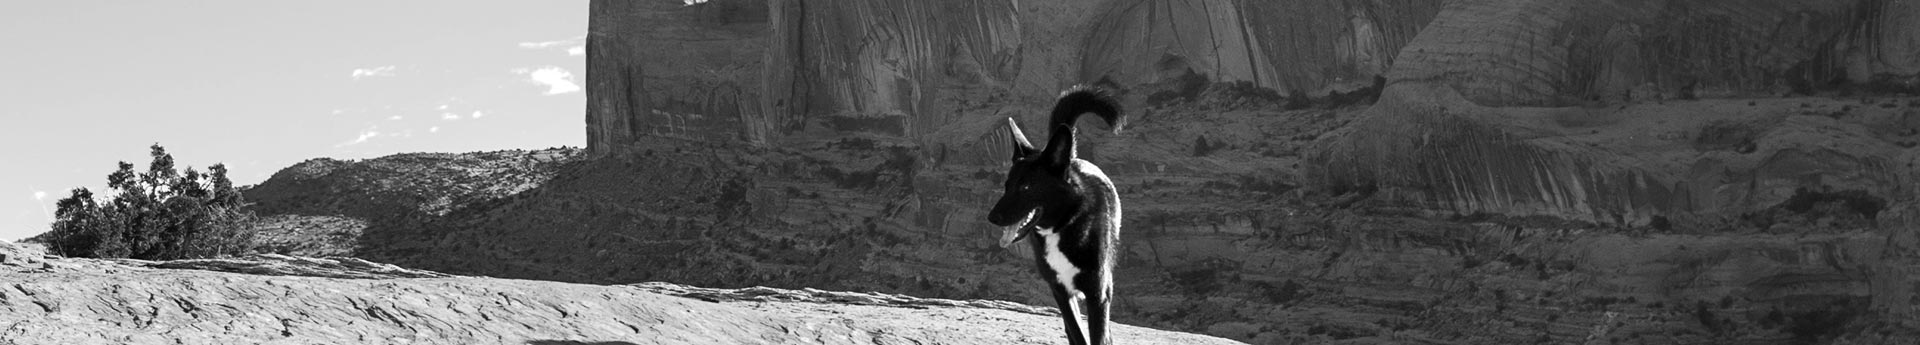 ORIJEN Puppy Large Dog Food - Black dog in the Moab desert - Fearless Iro in Moab, Utah